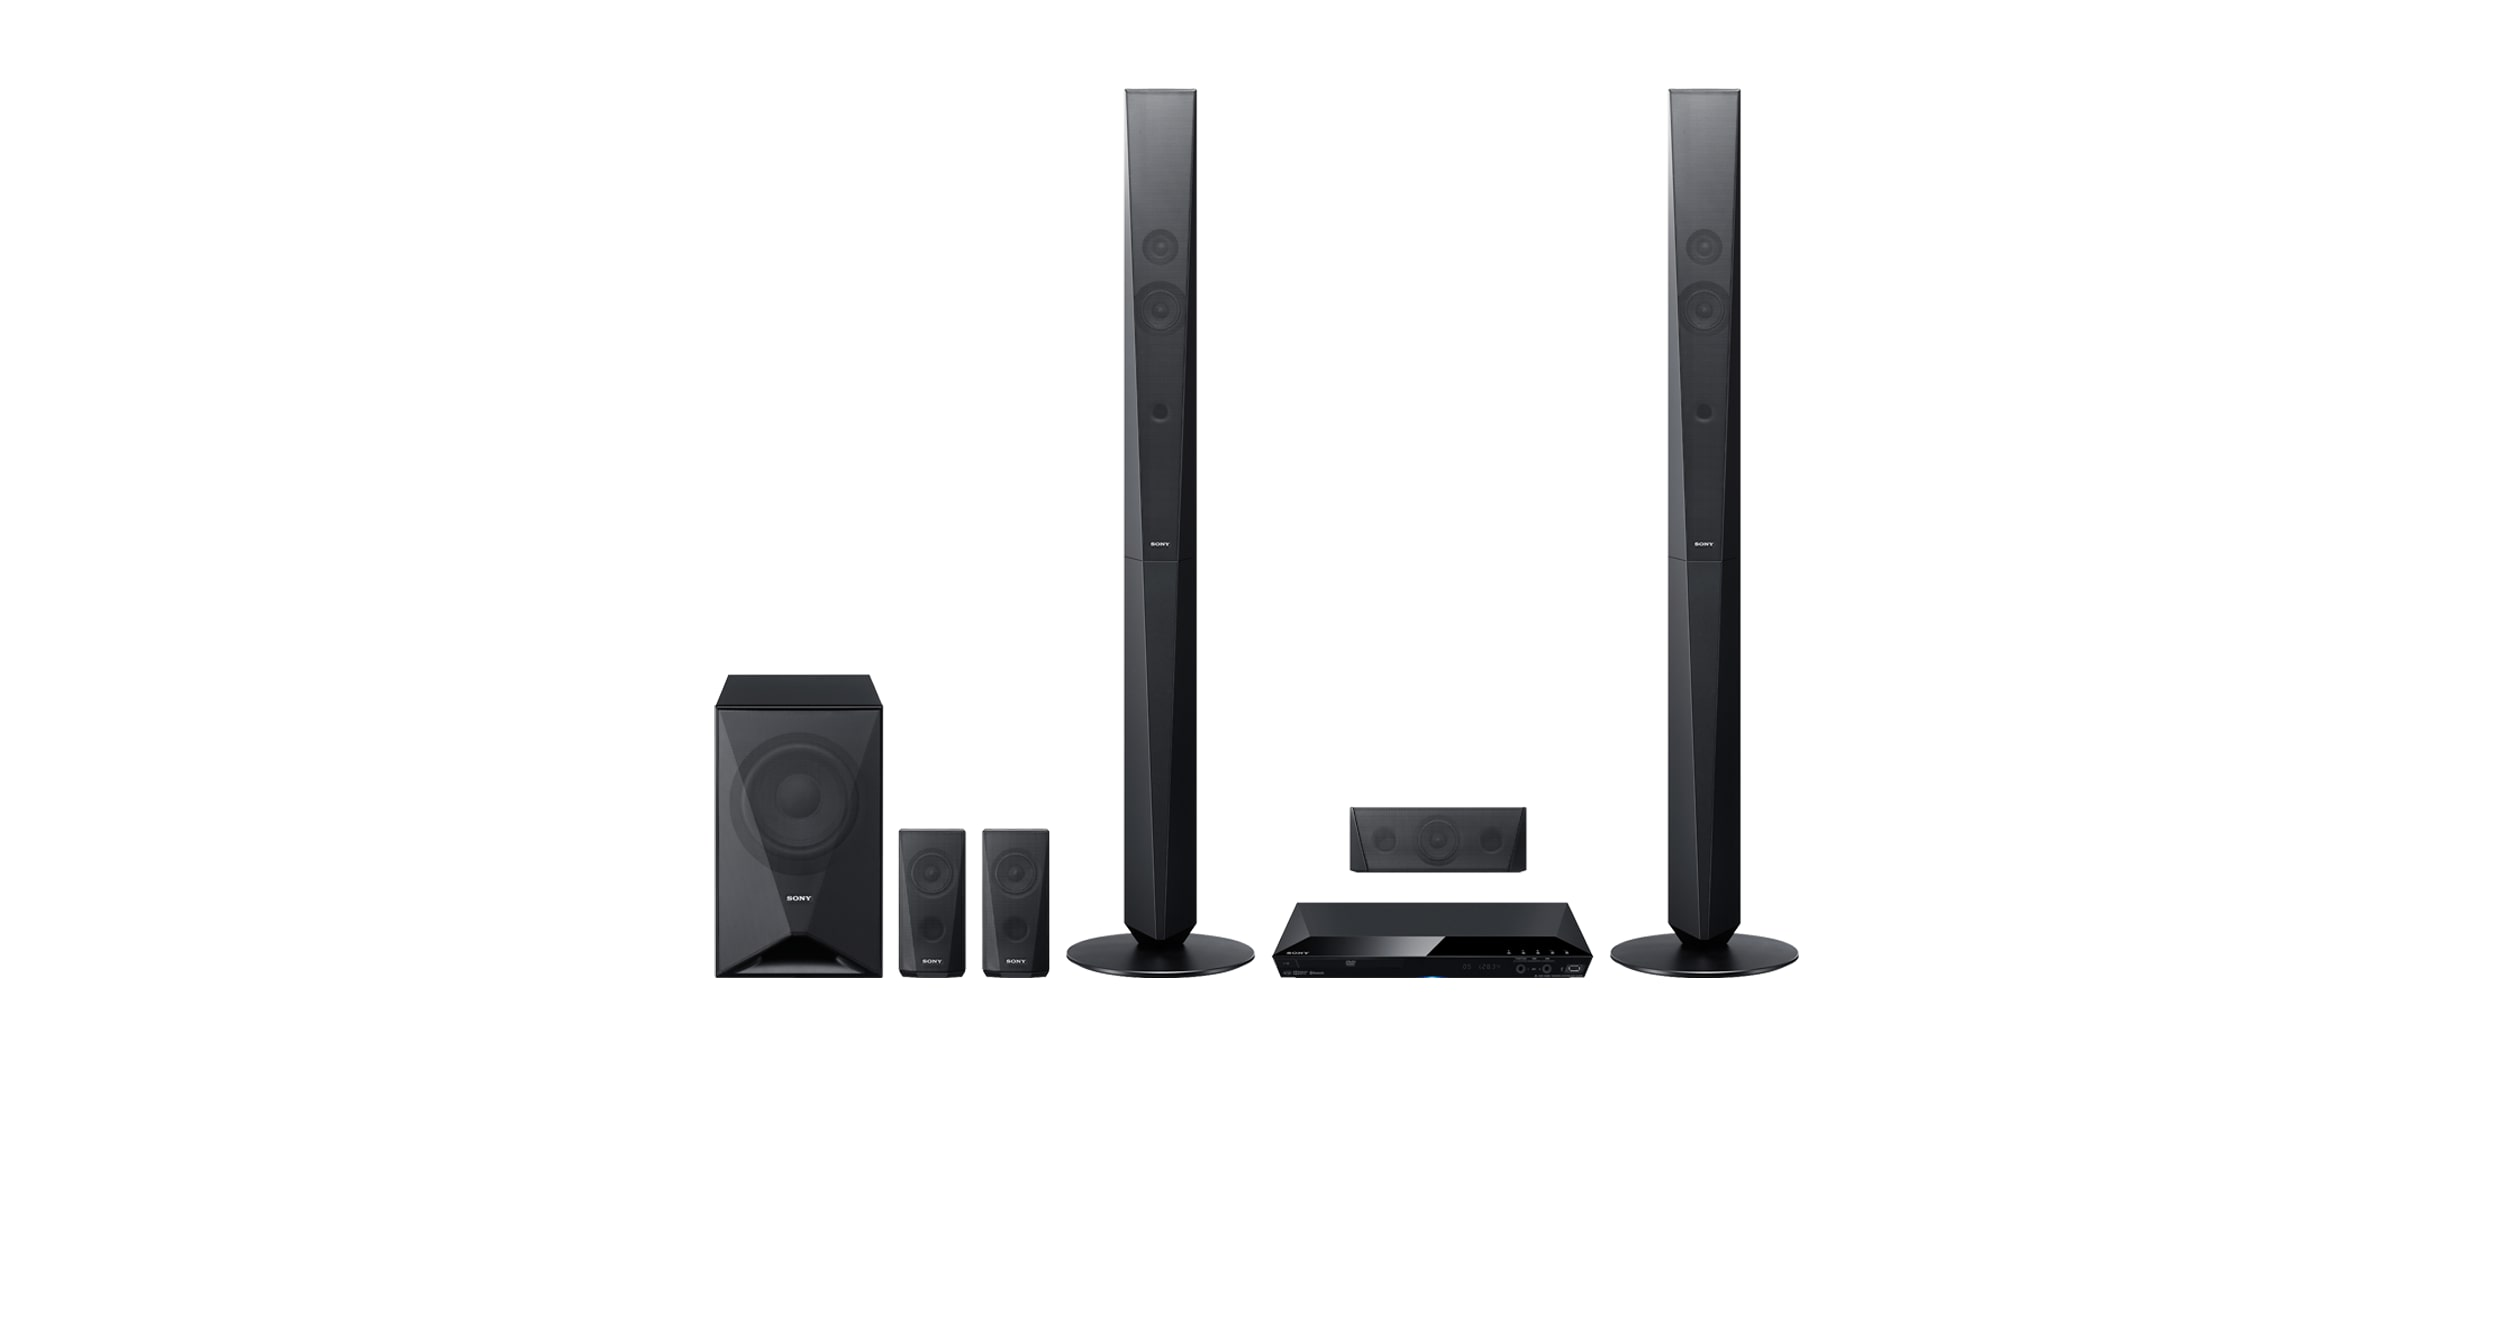 Dvd Home Cinema System With Bluetooth Dav Dz650 Sony Asia Pacific Wireless Network Diagram Entertainment